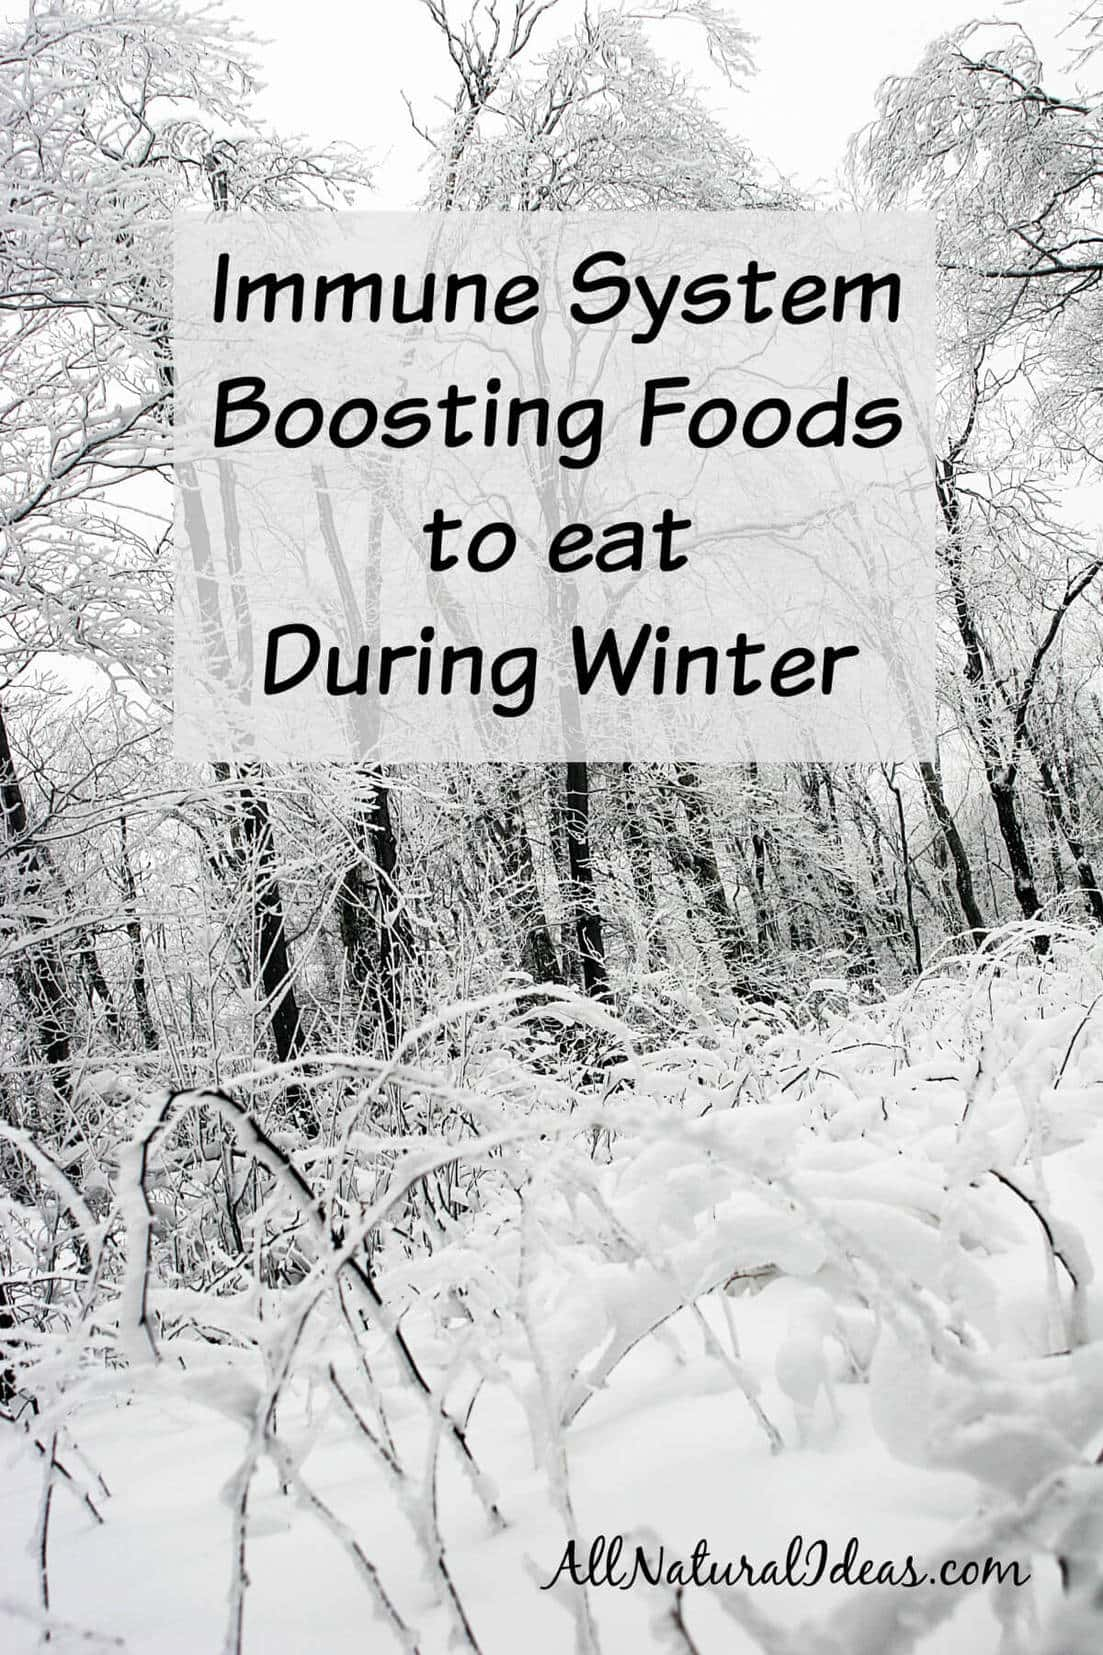 Immune system boosting foods to eat